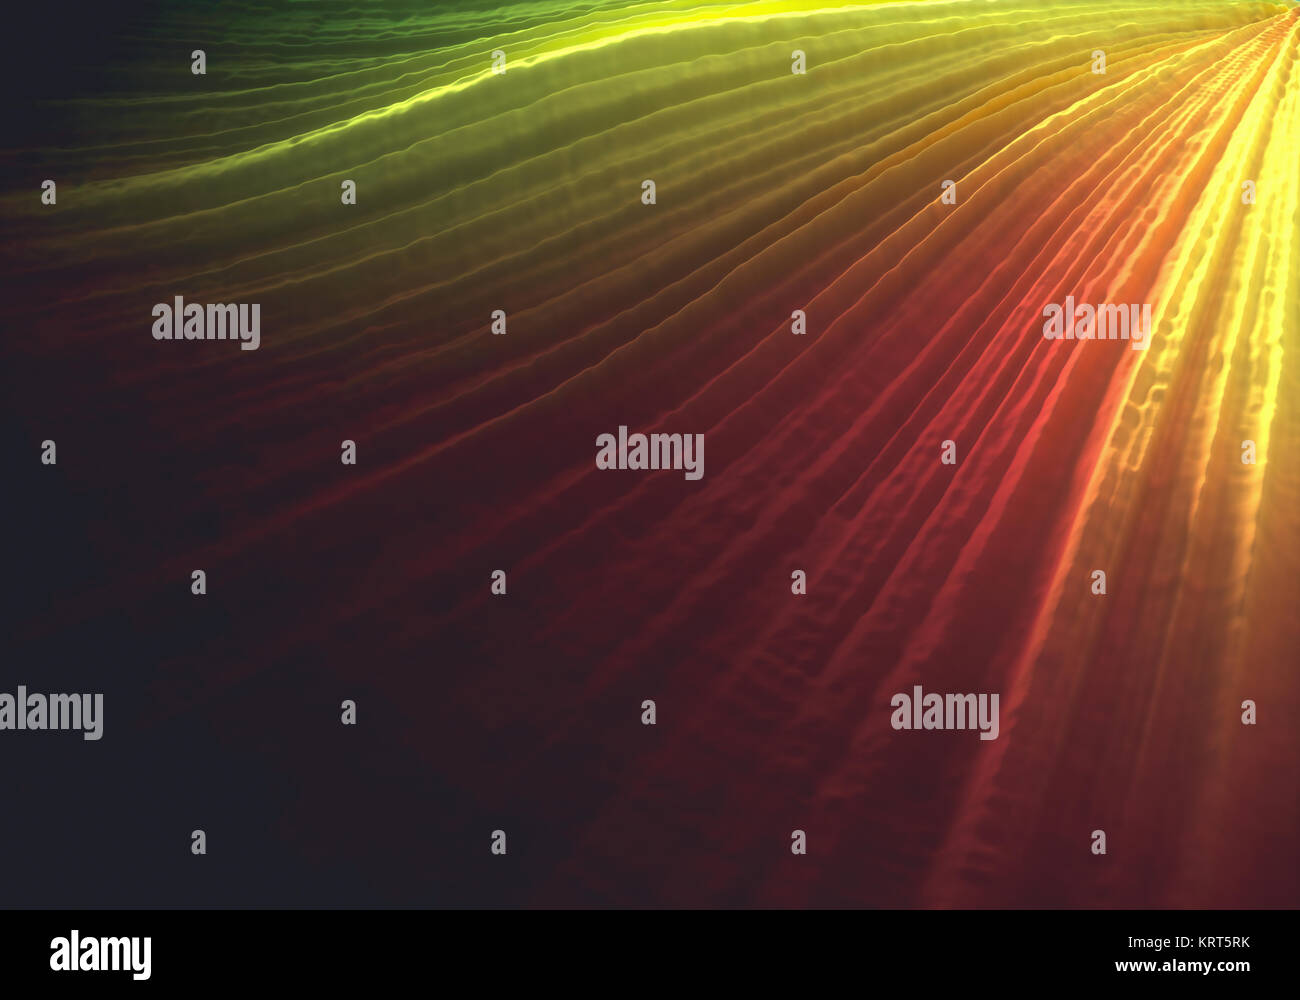 3D illustration. Colorful 3D embossed abstract background. - Stock Image